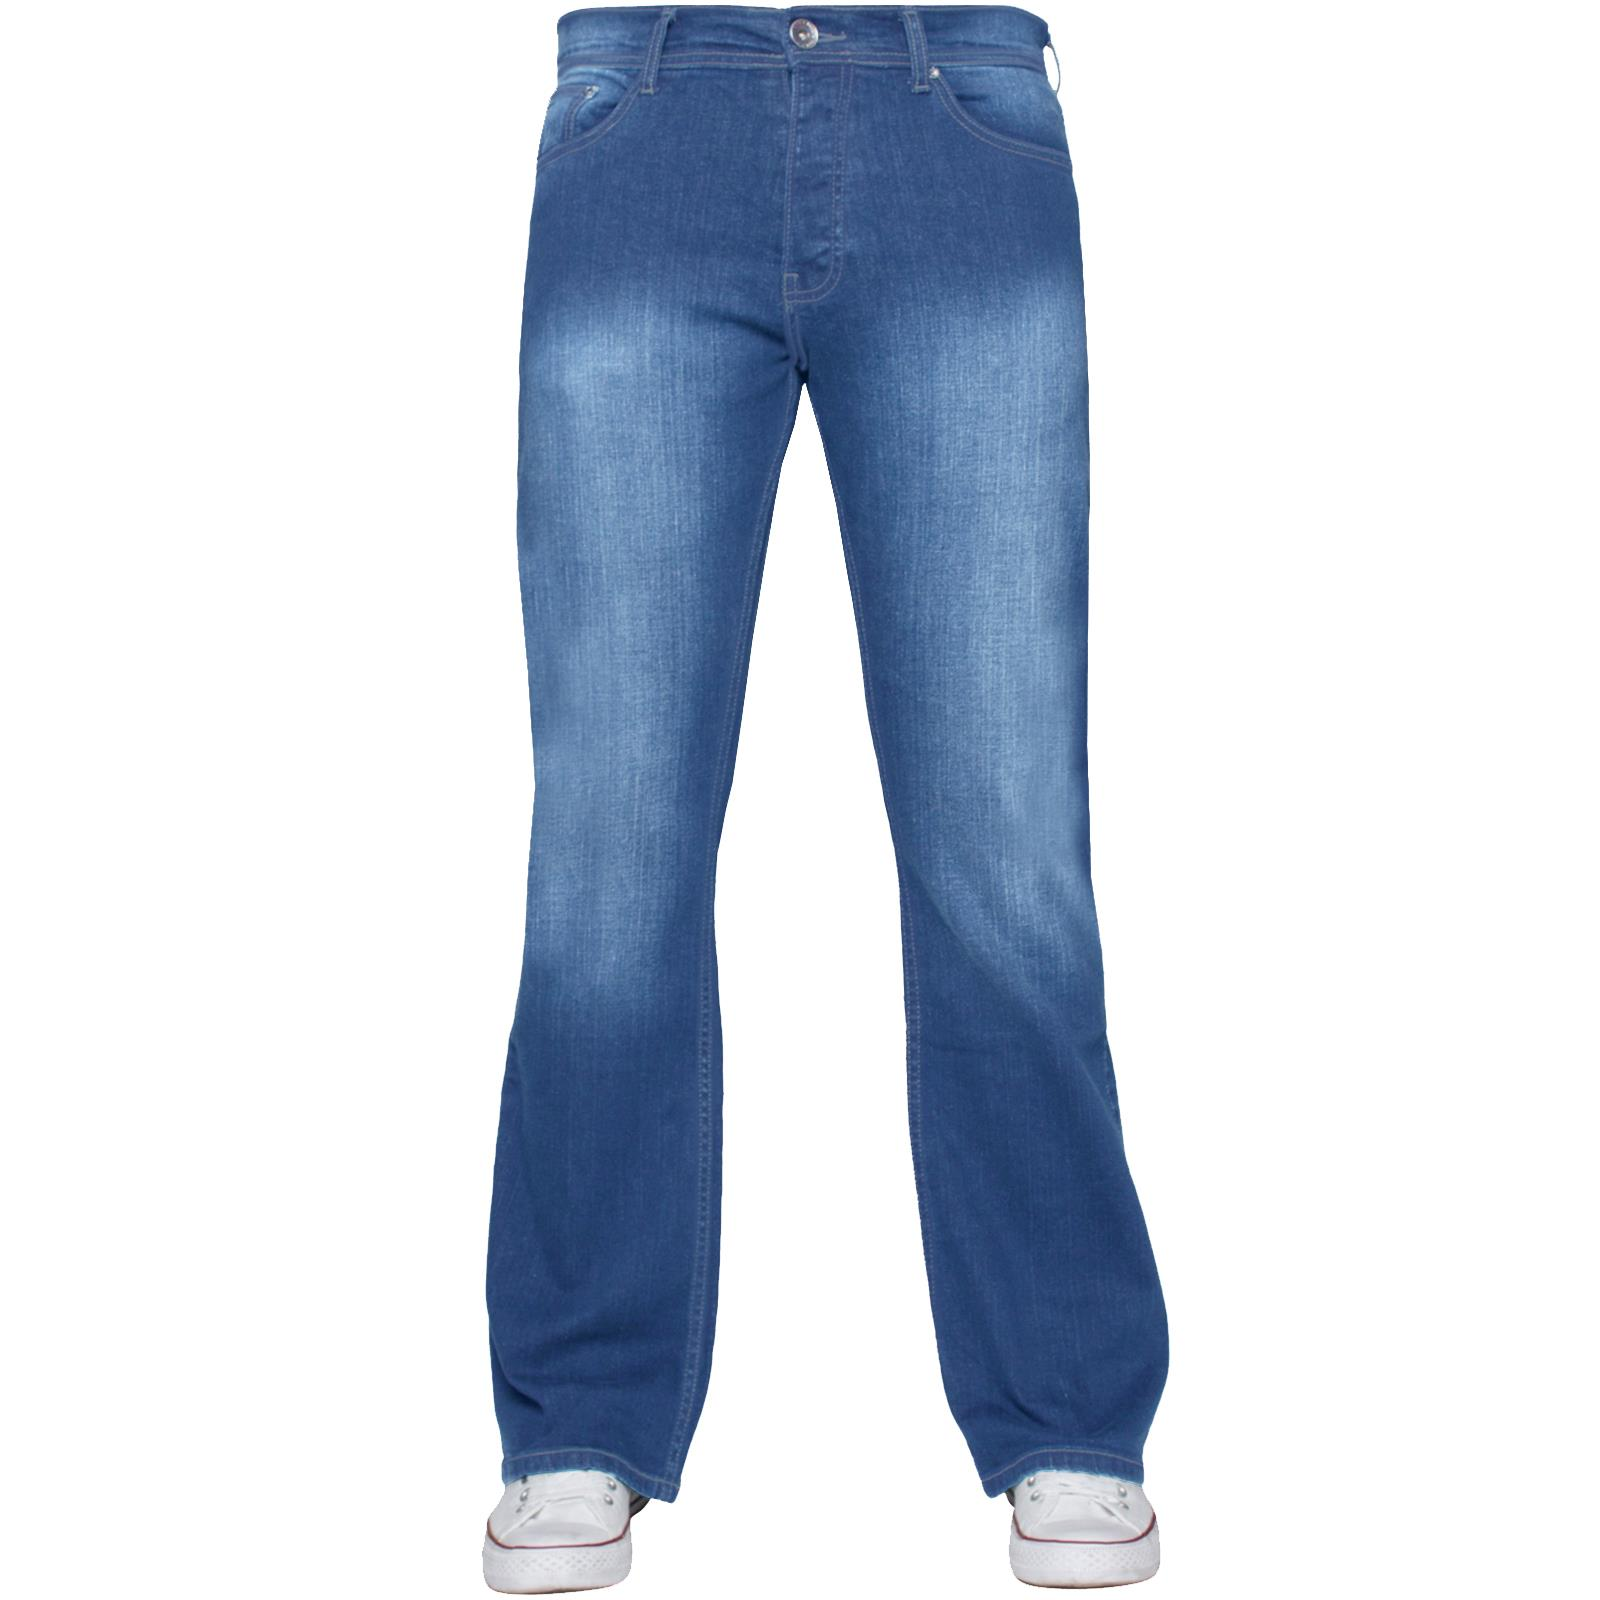 Mens-Straight-Bootcut-Jeans-Stretch-Denim-Pants-Regular-Fit-Big-Tall-All-Waists thumbnail 44